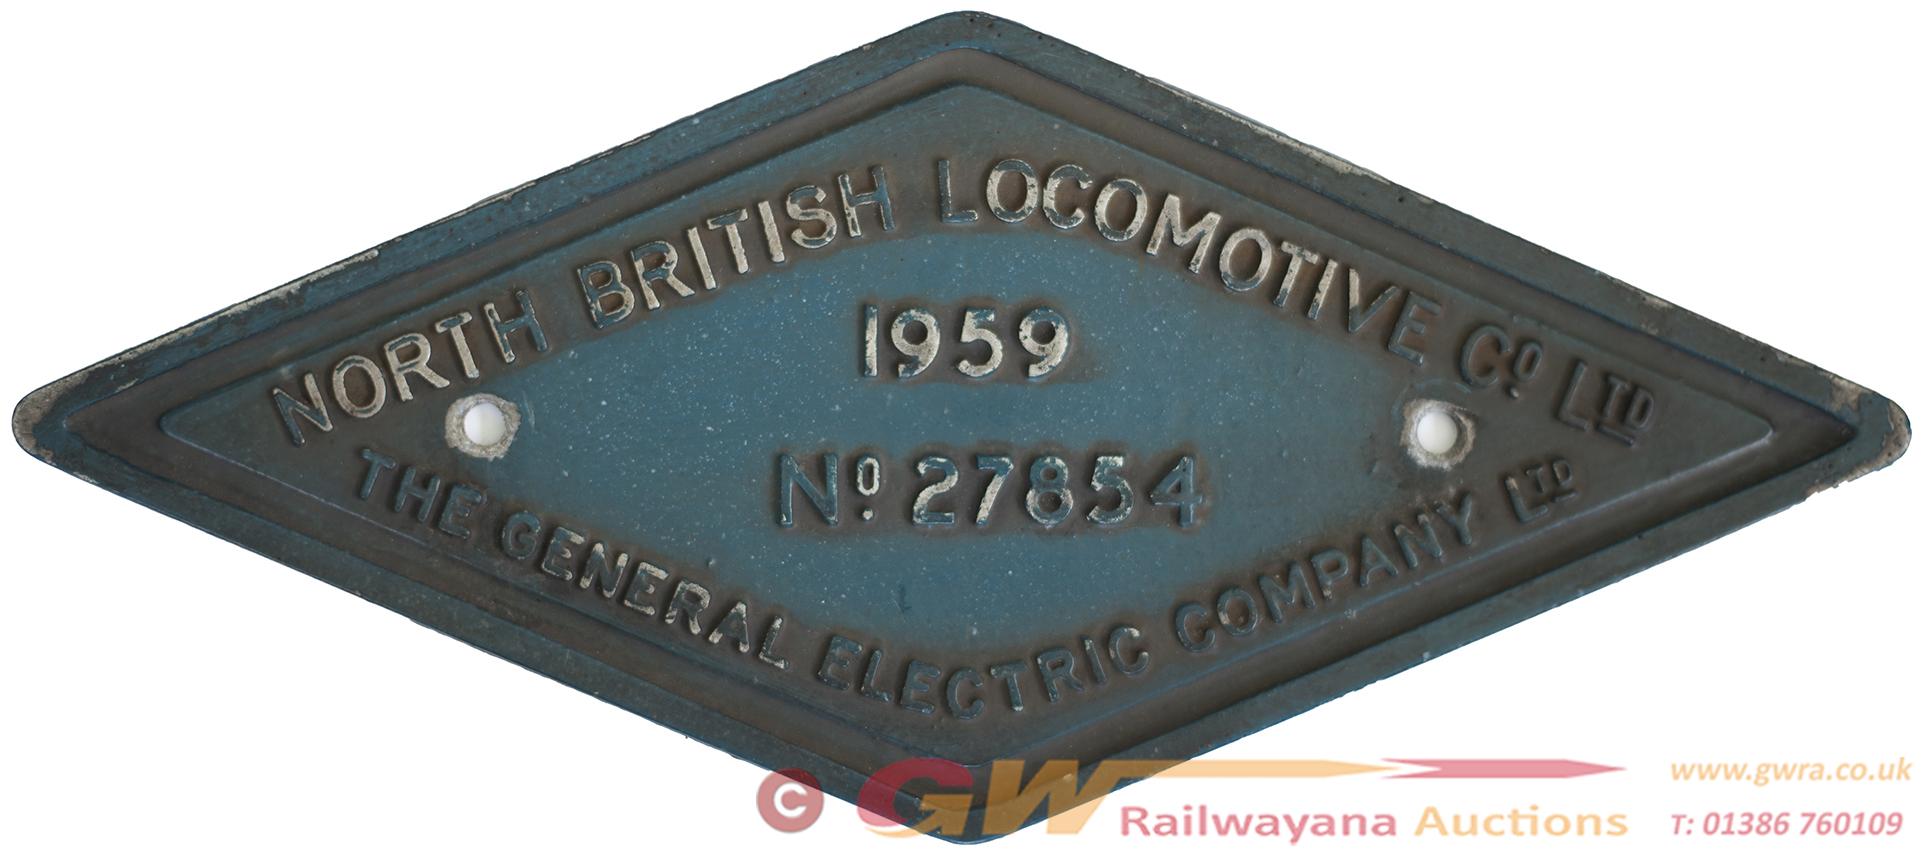 Worksplate NORTH BRITISH LOCOMOTIVE CO LTD THE